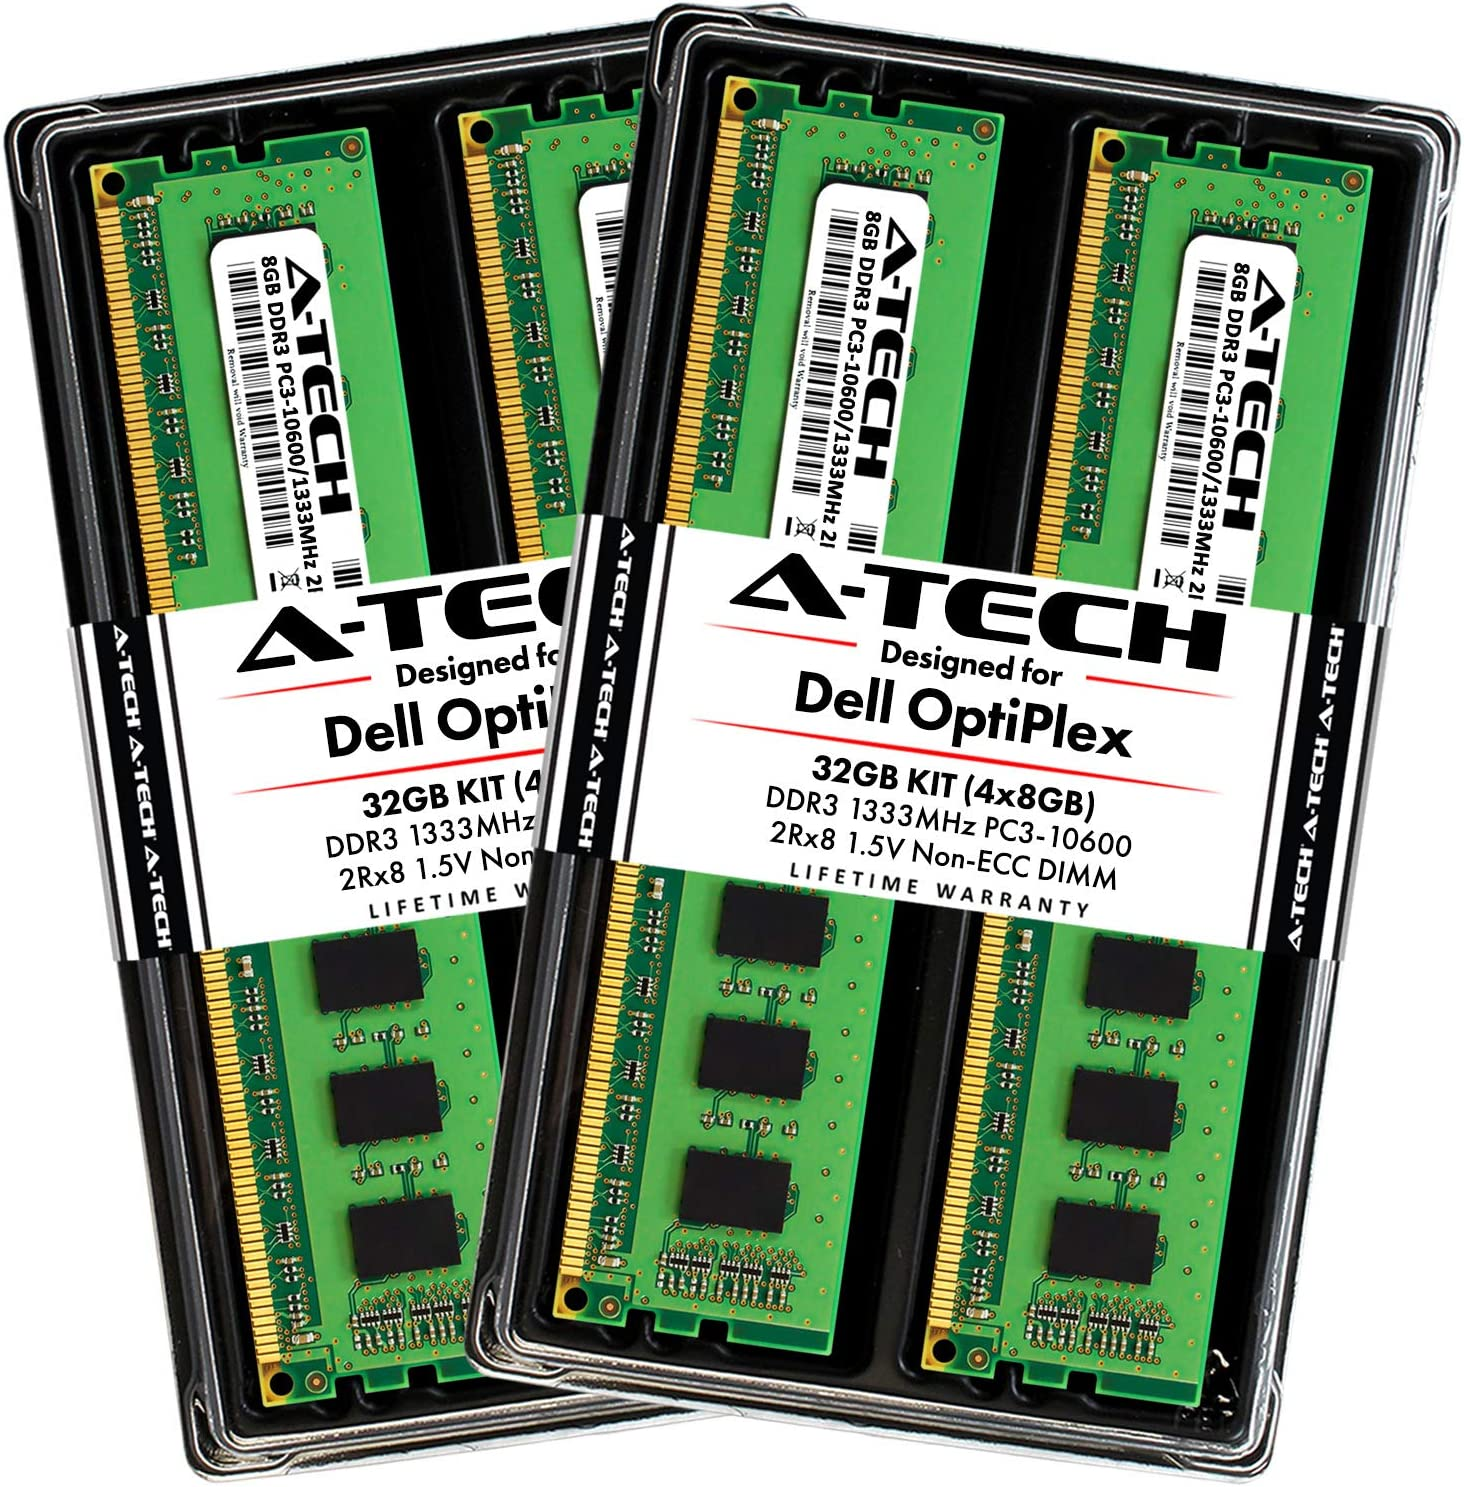 A-Tech 32GB Max RAM Kit for Dell OptiPlex 9010, 7010, 990, 790, MT/DT/SFF - (4 x 8GB) DDR3 1333MHz PC3-10600 Non-ECC DIMM Memory Upgrade